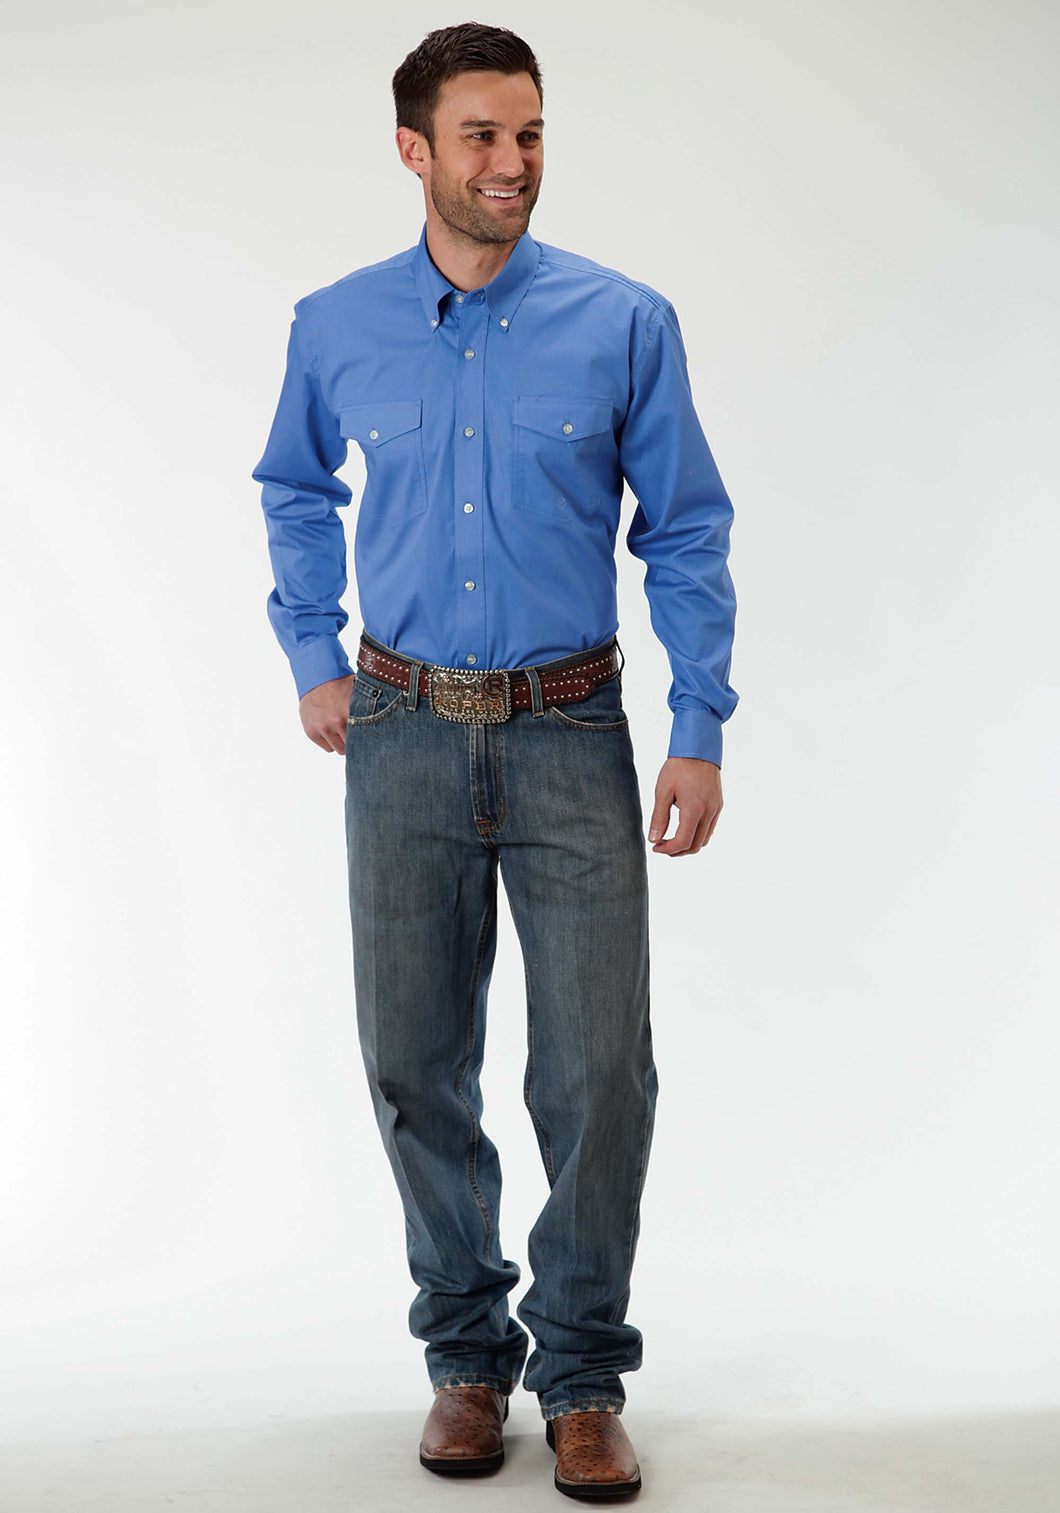 Men's Amarillo Collection- Bridle Path Amarillo Mens Long Sleeve Shirt 0856 Solid Poplin - Periwinkle